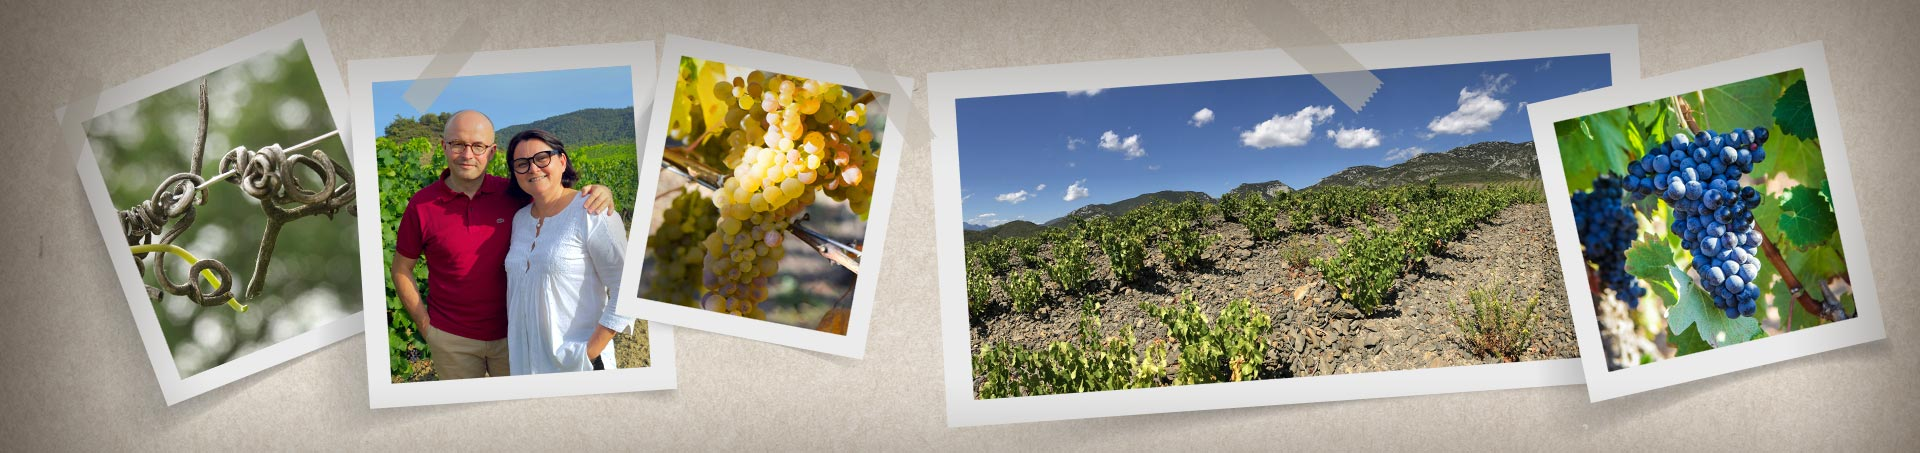 jamelles-nos-terroir-header-terroir